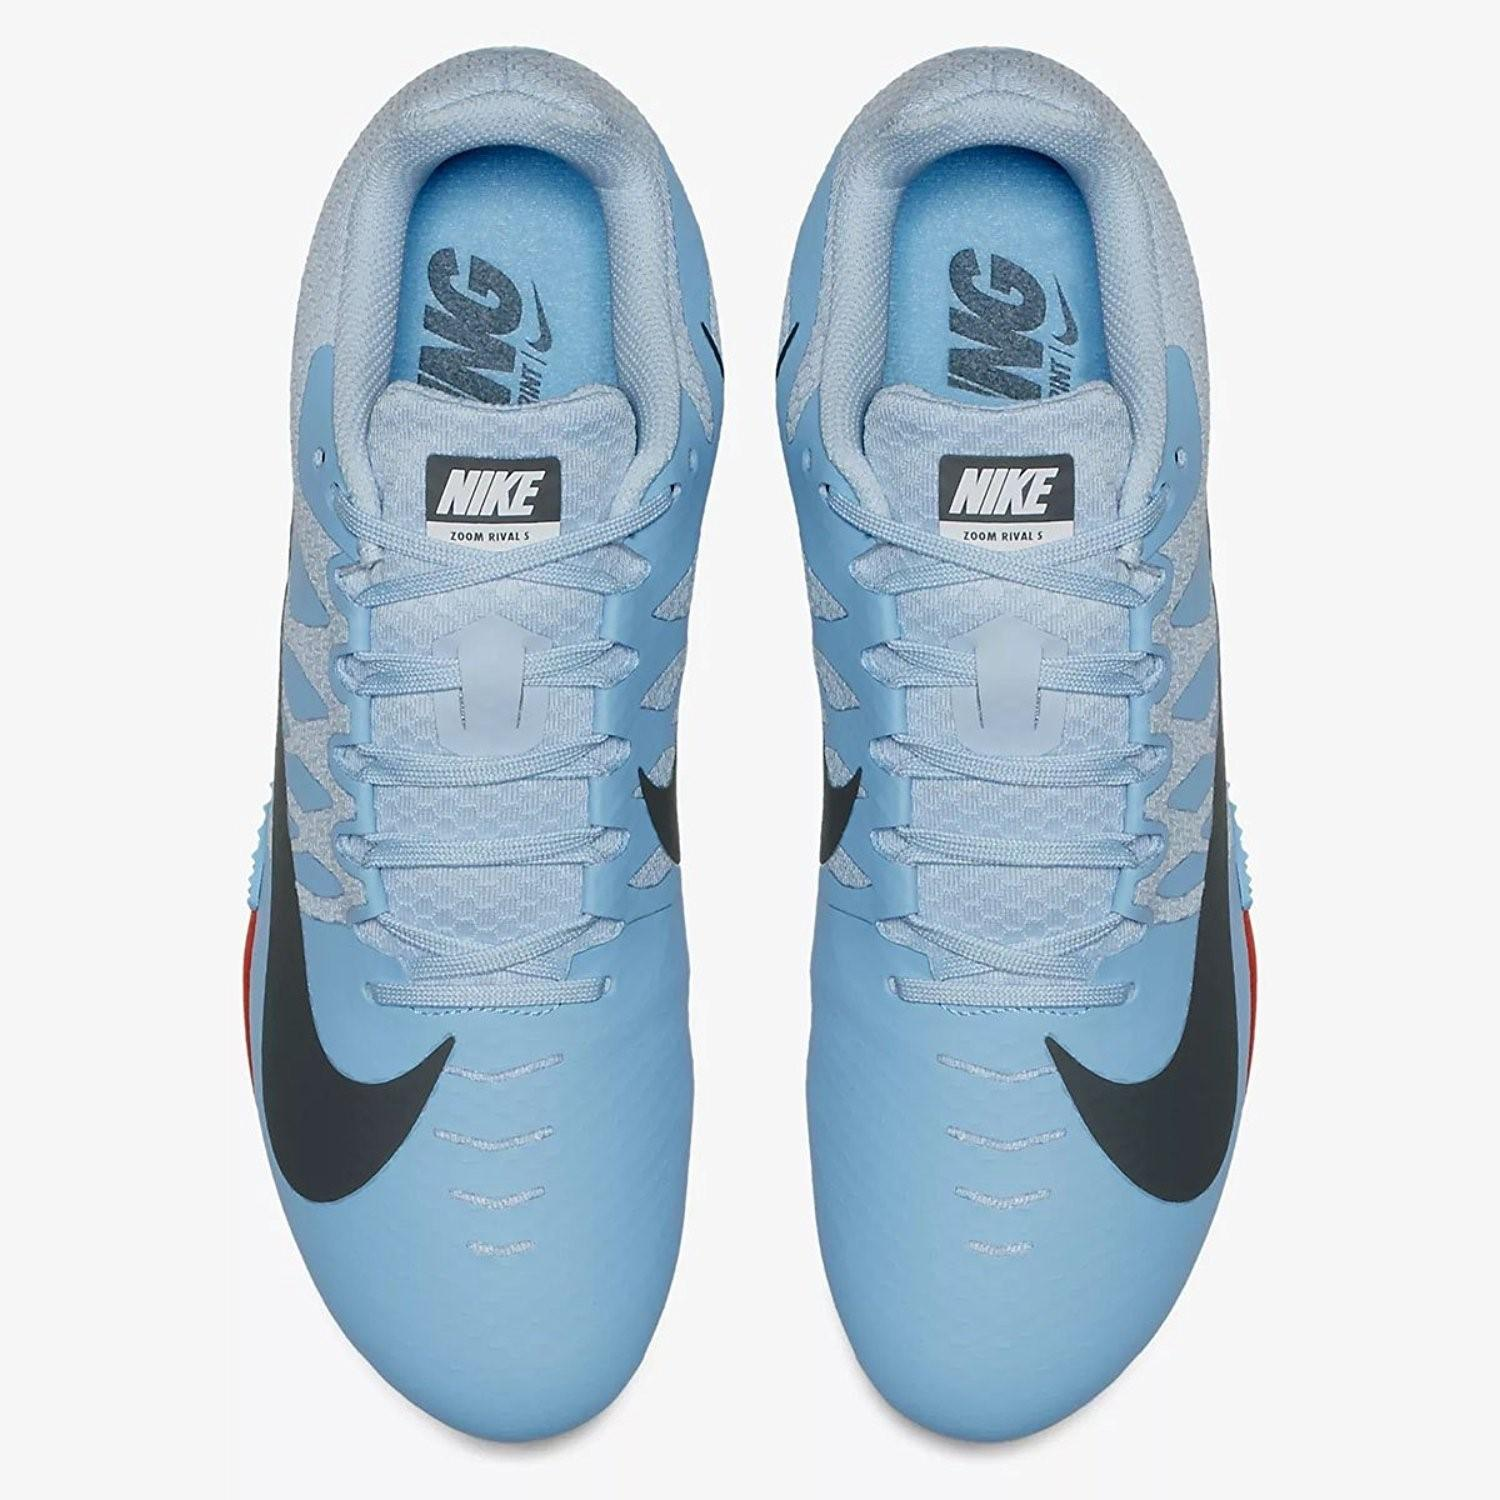 Lyst - Nike Zoom Rival S 9 Track Spike 907564-446 in Blue for Men 19f60e7af